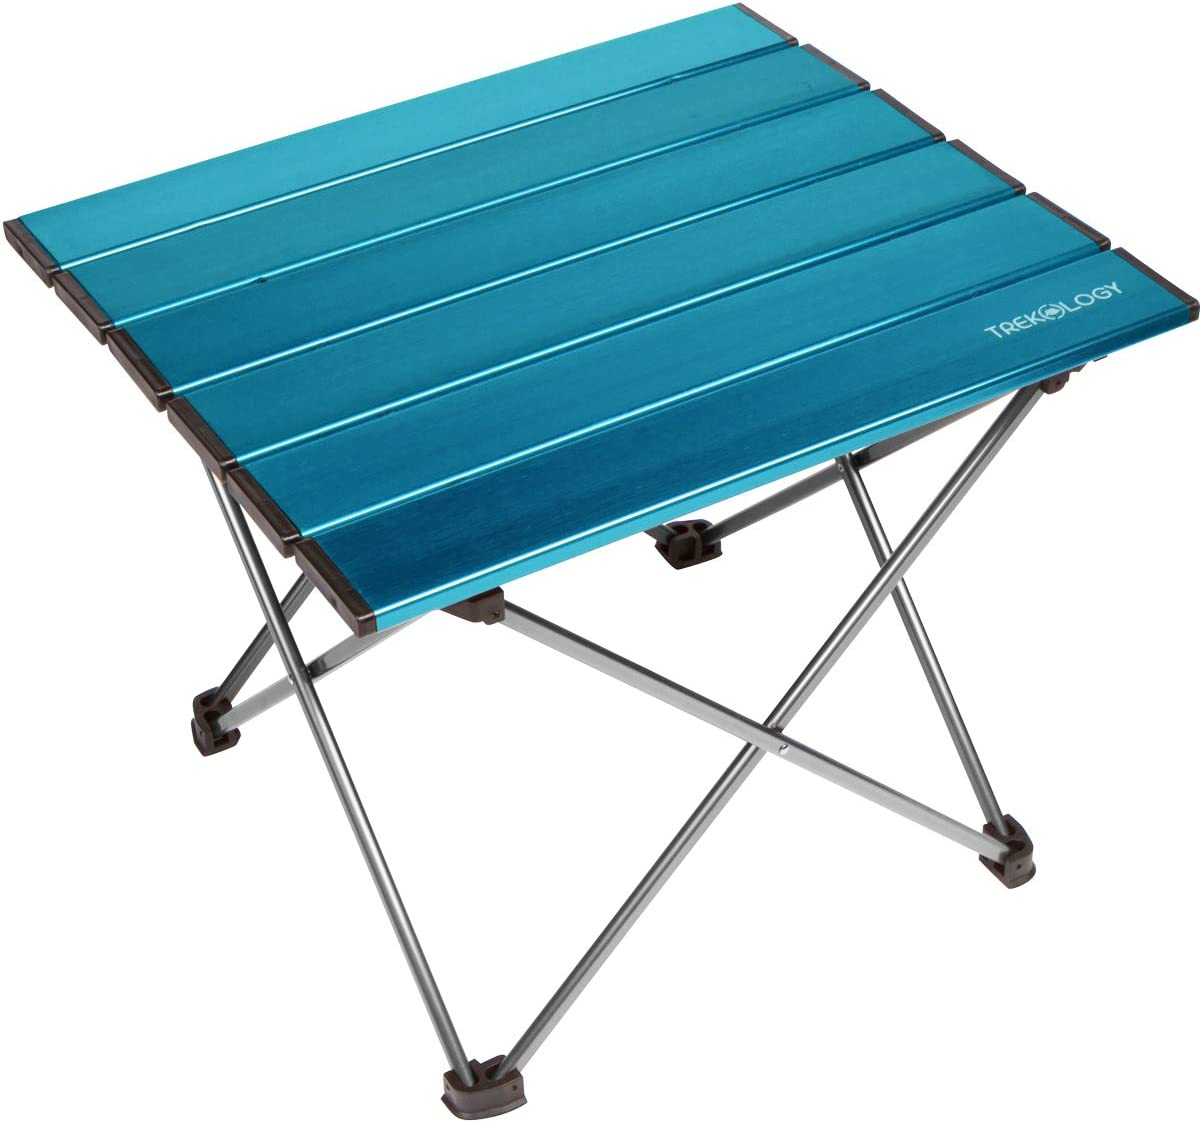 Trekology Portable Camping Side Tables with Aluminum Table Top Hard-Topped Folding Table in a Bag for Picnic, Camp, Beach, Boat, Useful for Dining Cooking with Burner, Easy to Clean